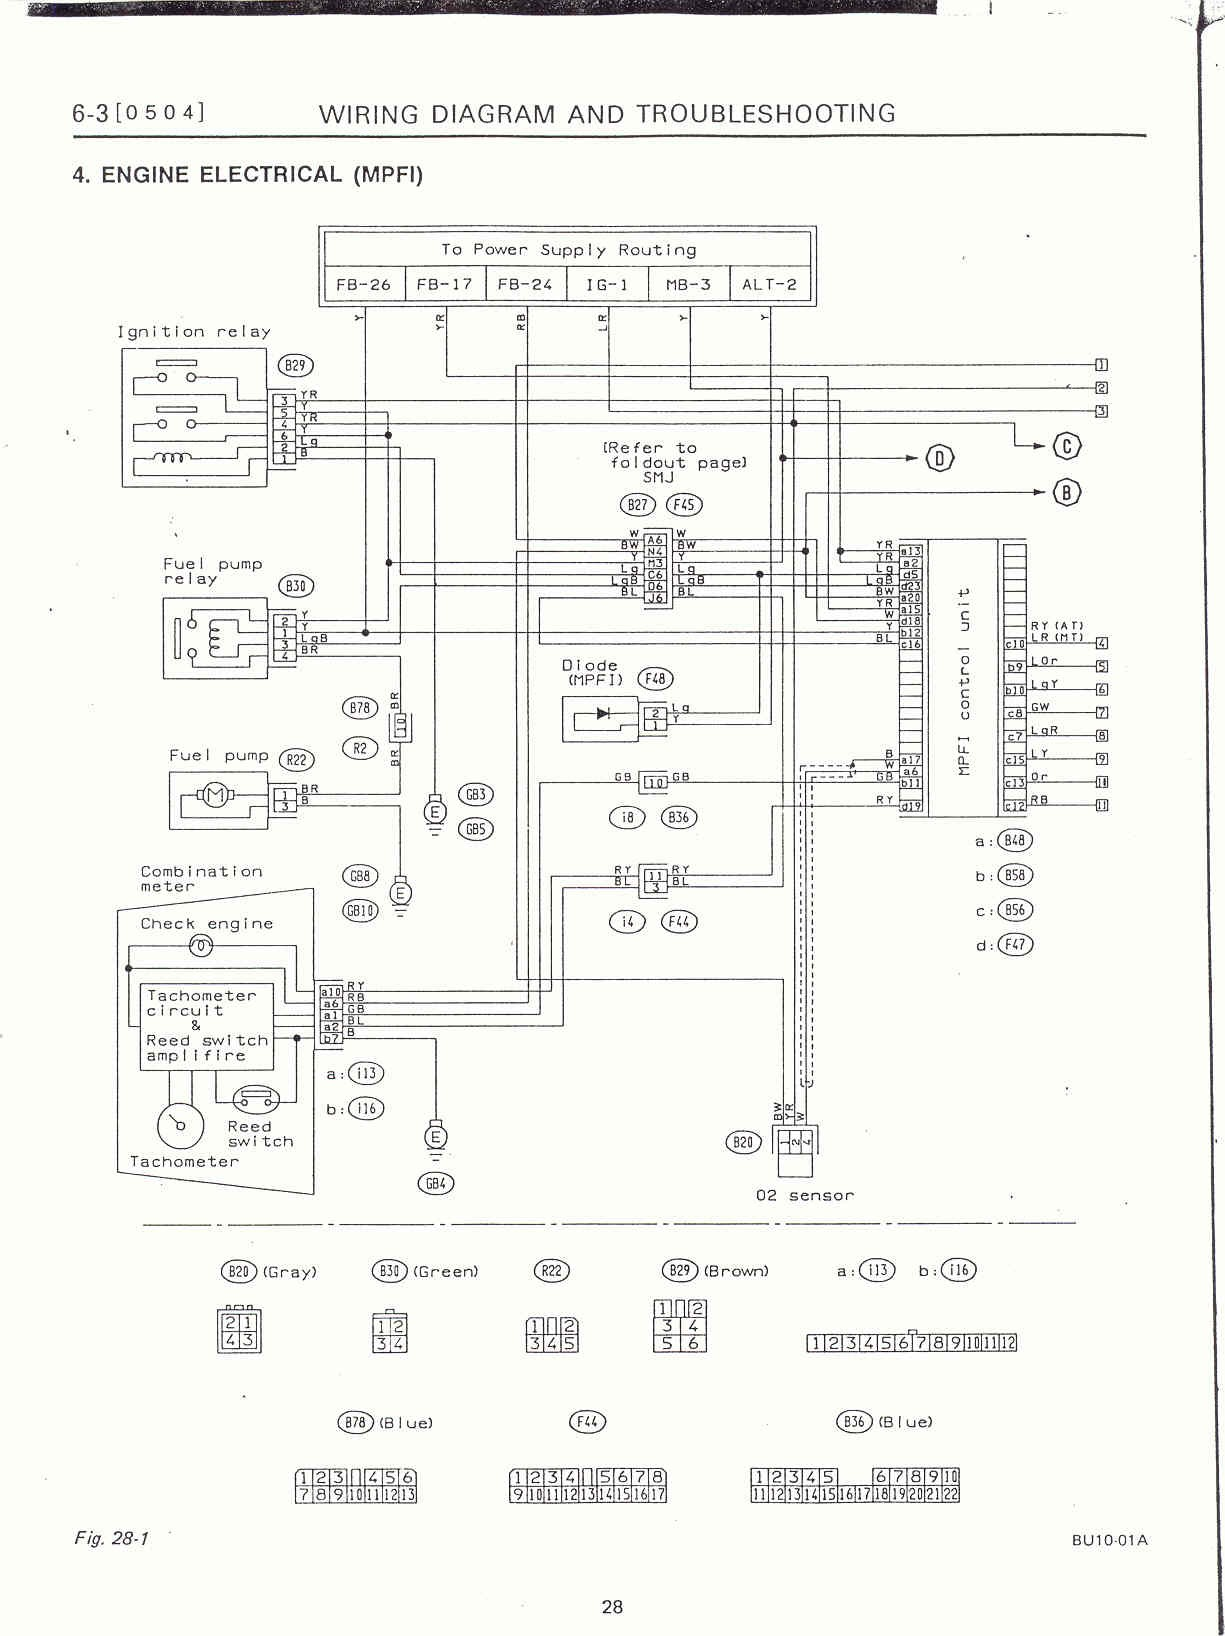 subaru 2 5 engine diagram addition 2000 subaru impreza 2 5